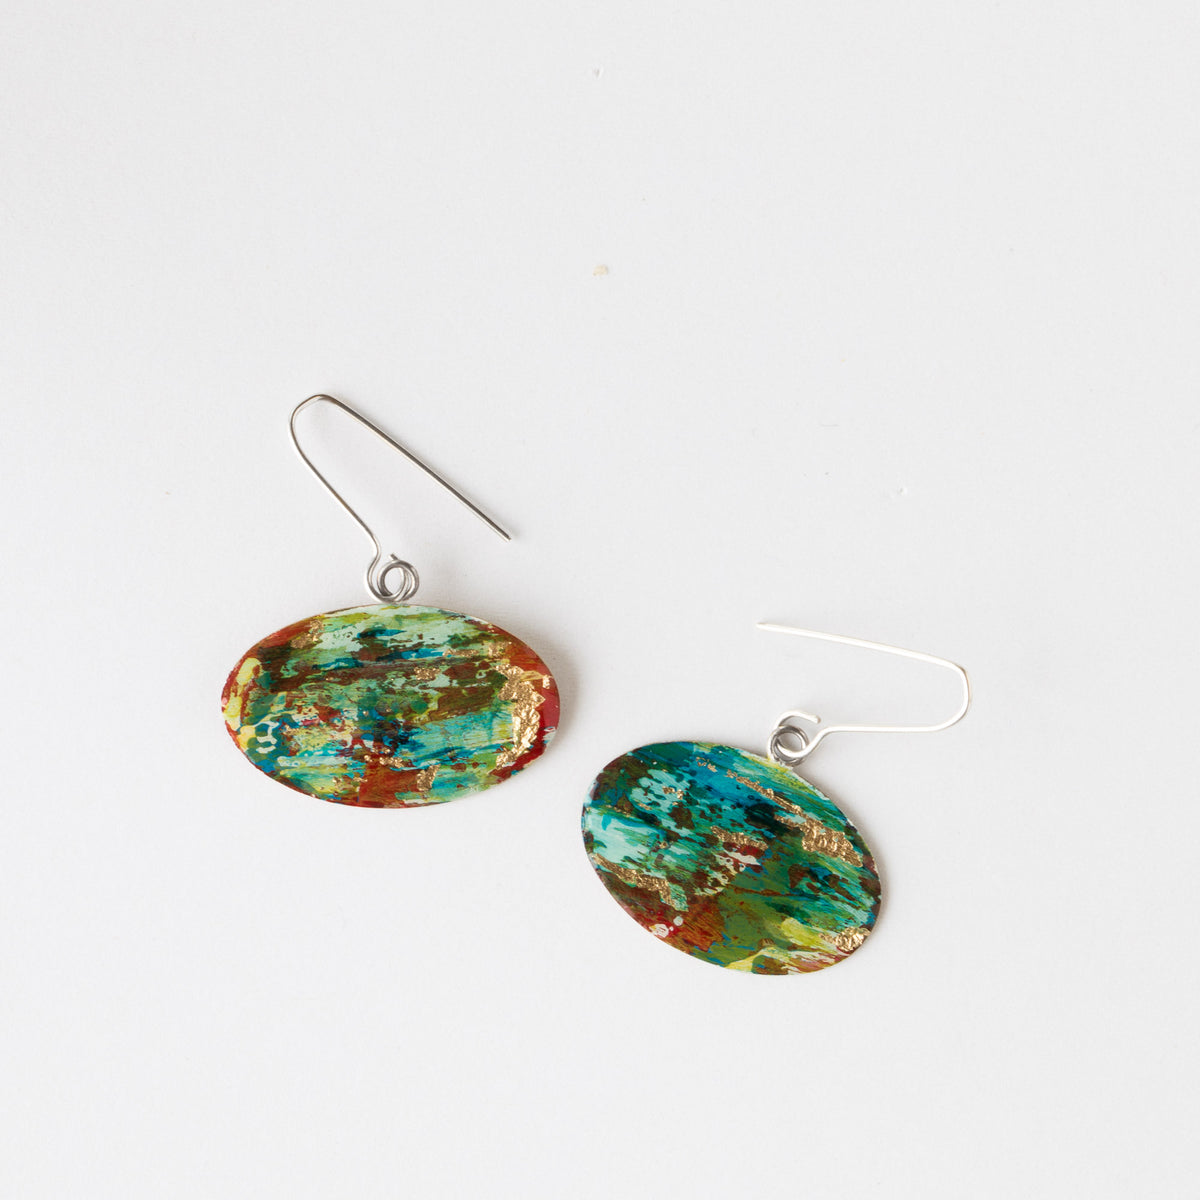 Top View - 728 - Handmade Oval Painted Brass Contemporary Earrings - Sold by Chic & Basta